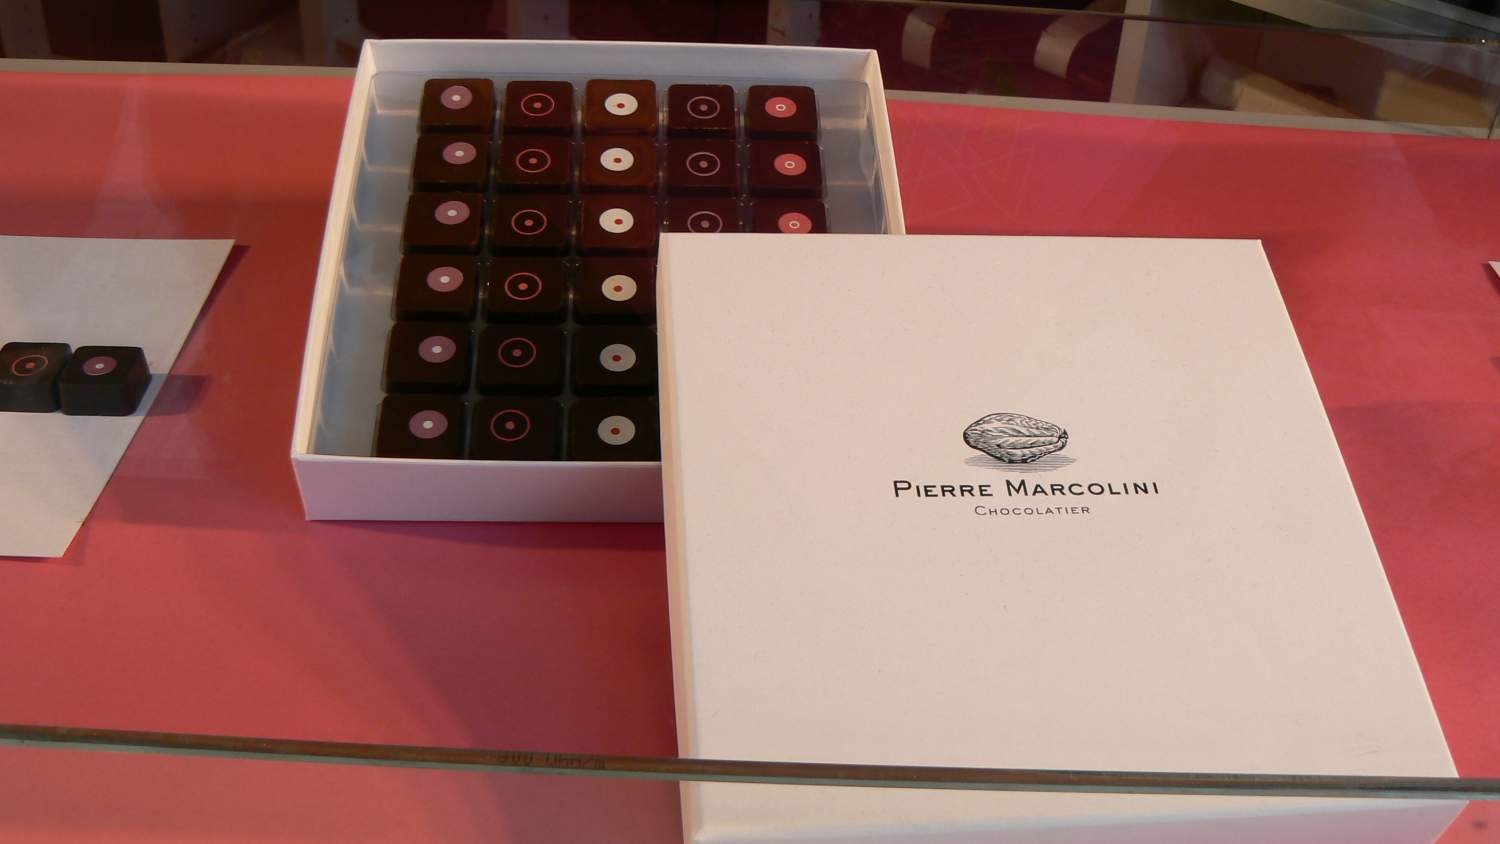 Pierre Marcolini, chocolate maker in Brussels